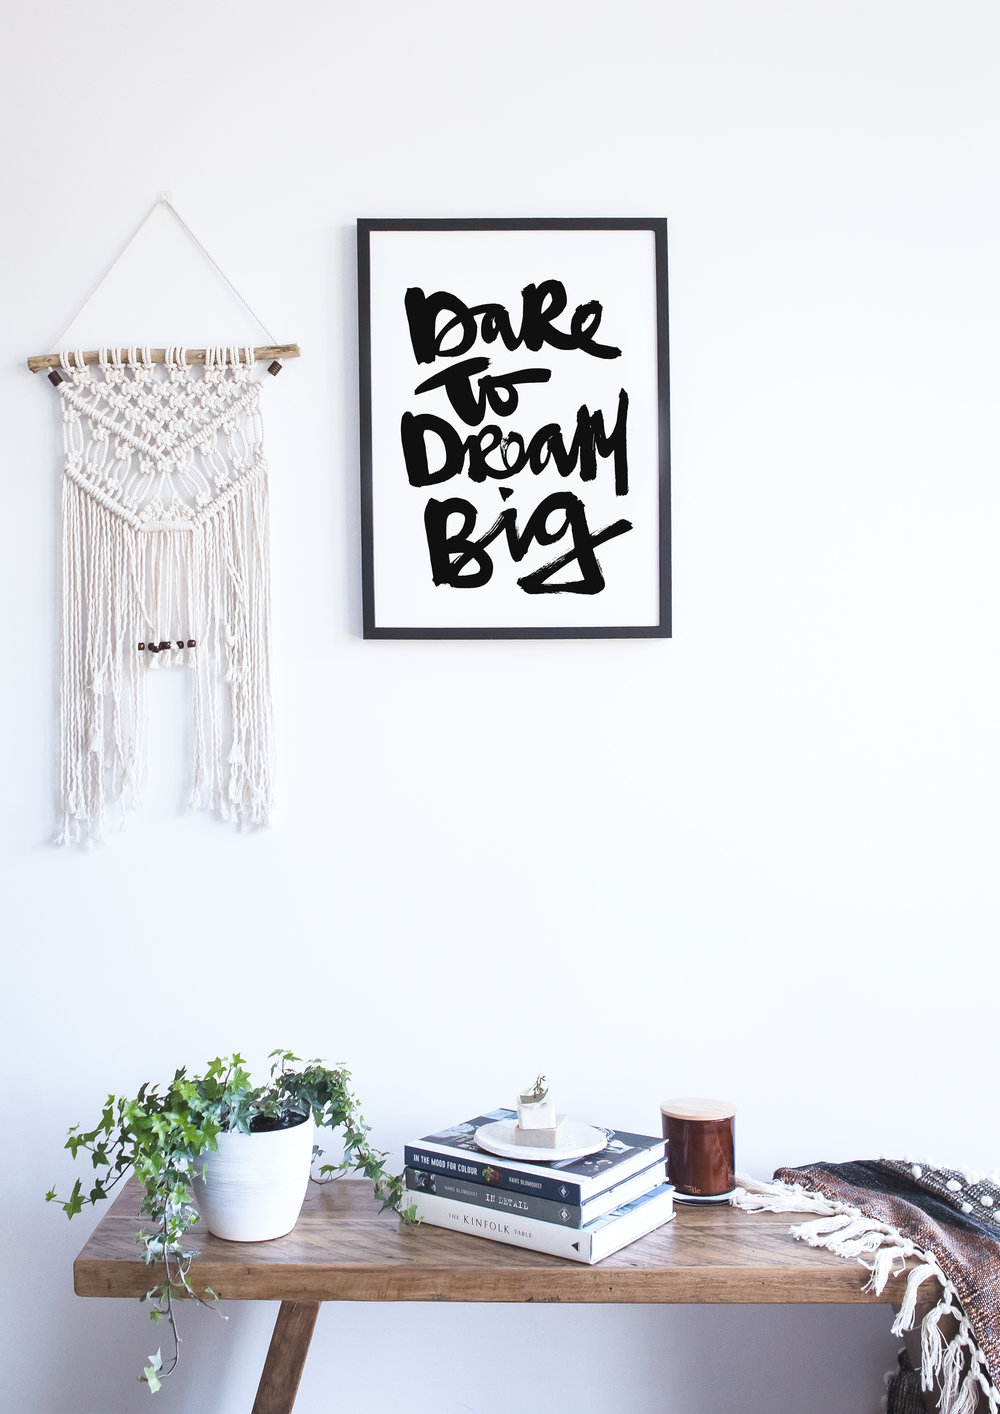 Dare-to-dream-big-pinterest.jpg